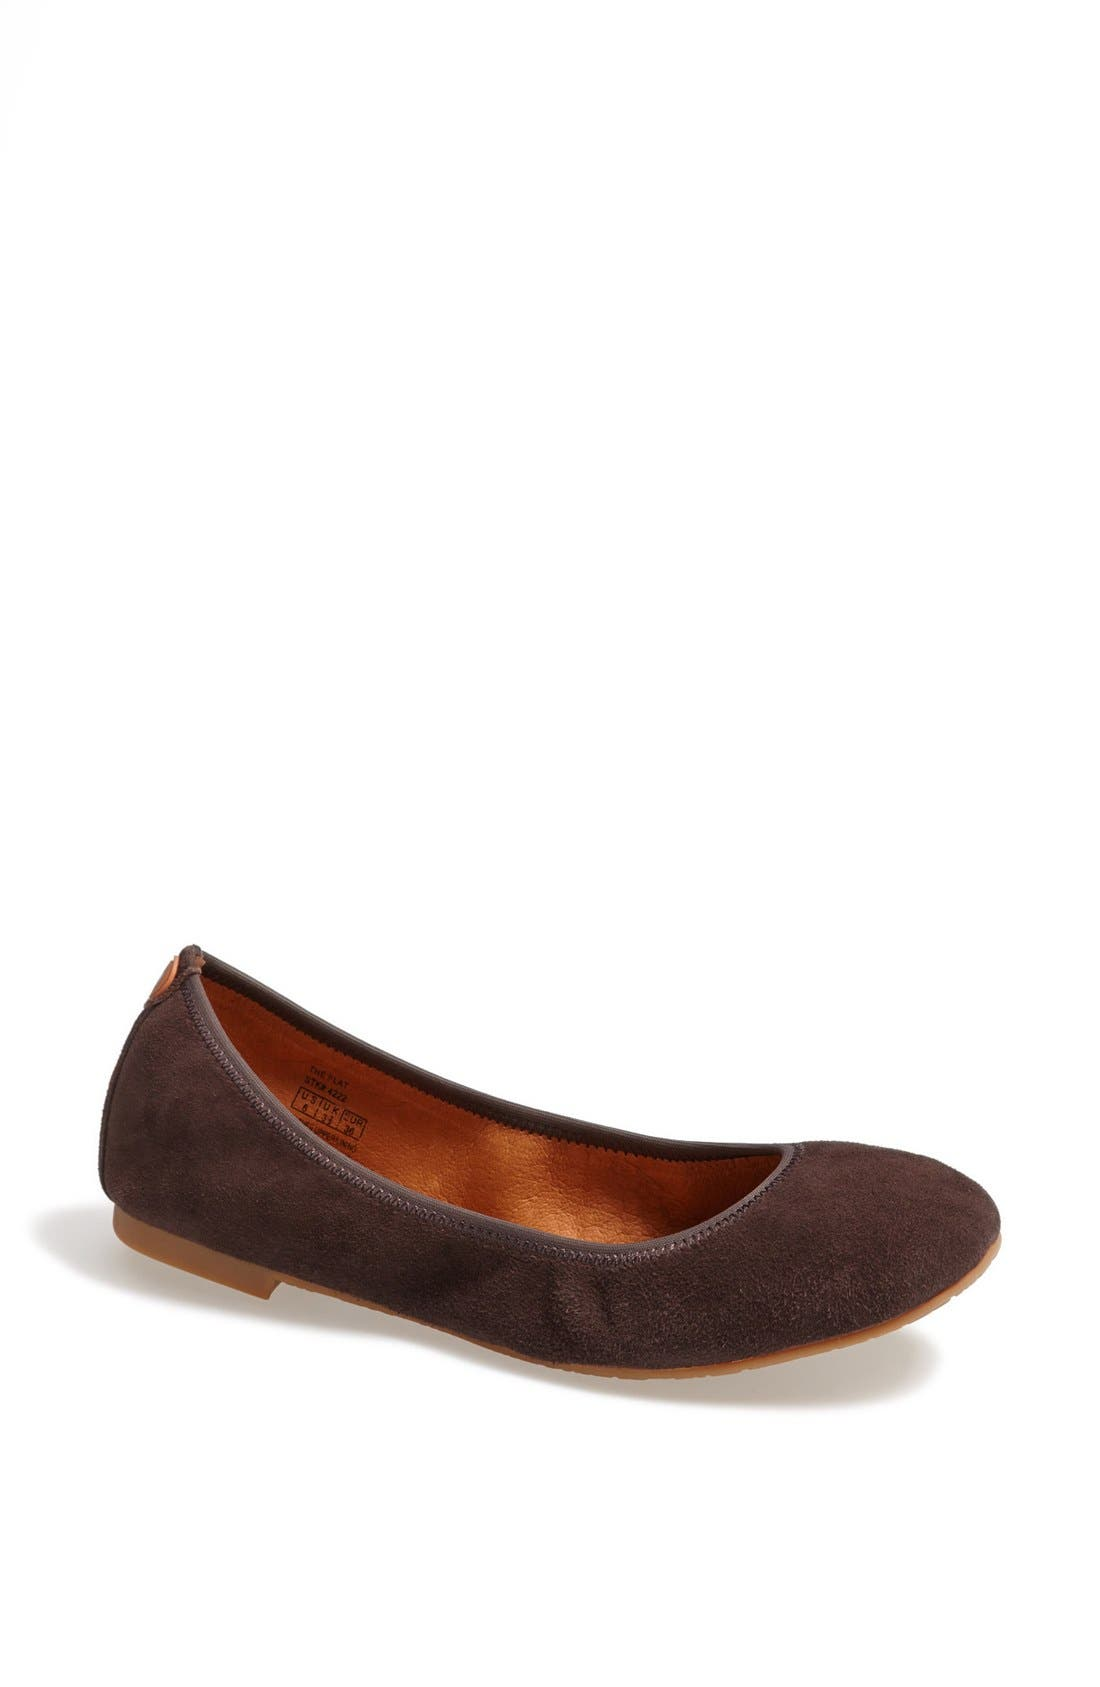 Main Image - Juil 'The Flat' Earthing Suede Ballet Flat